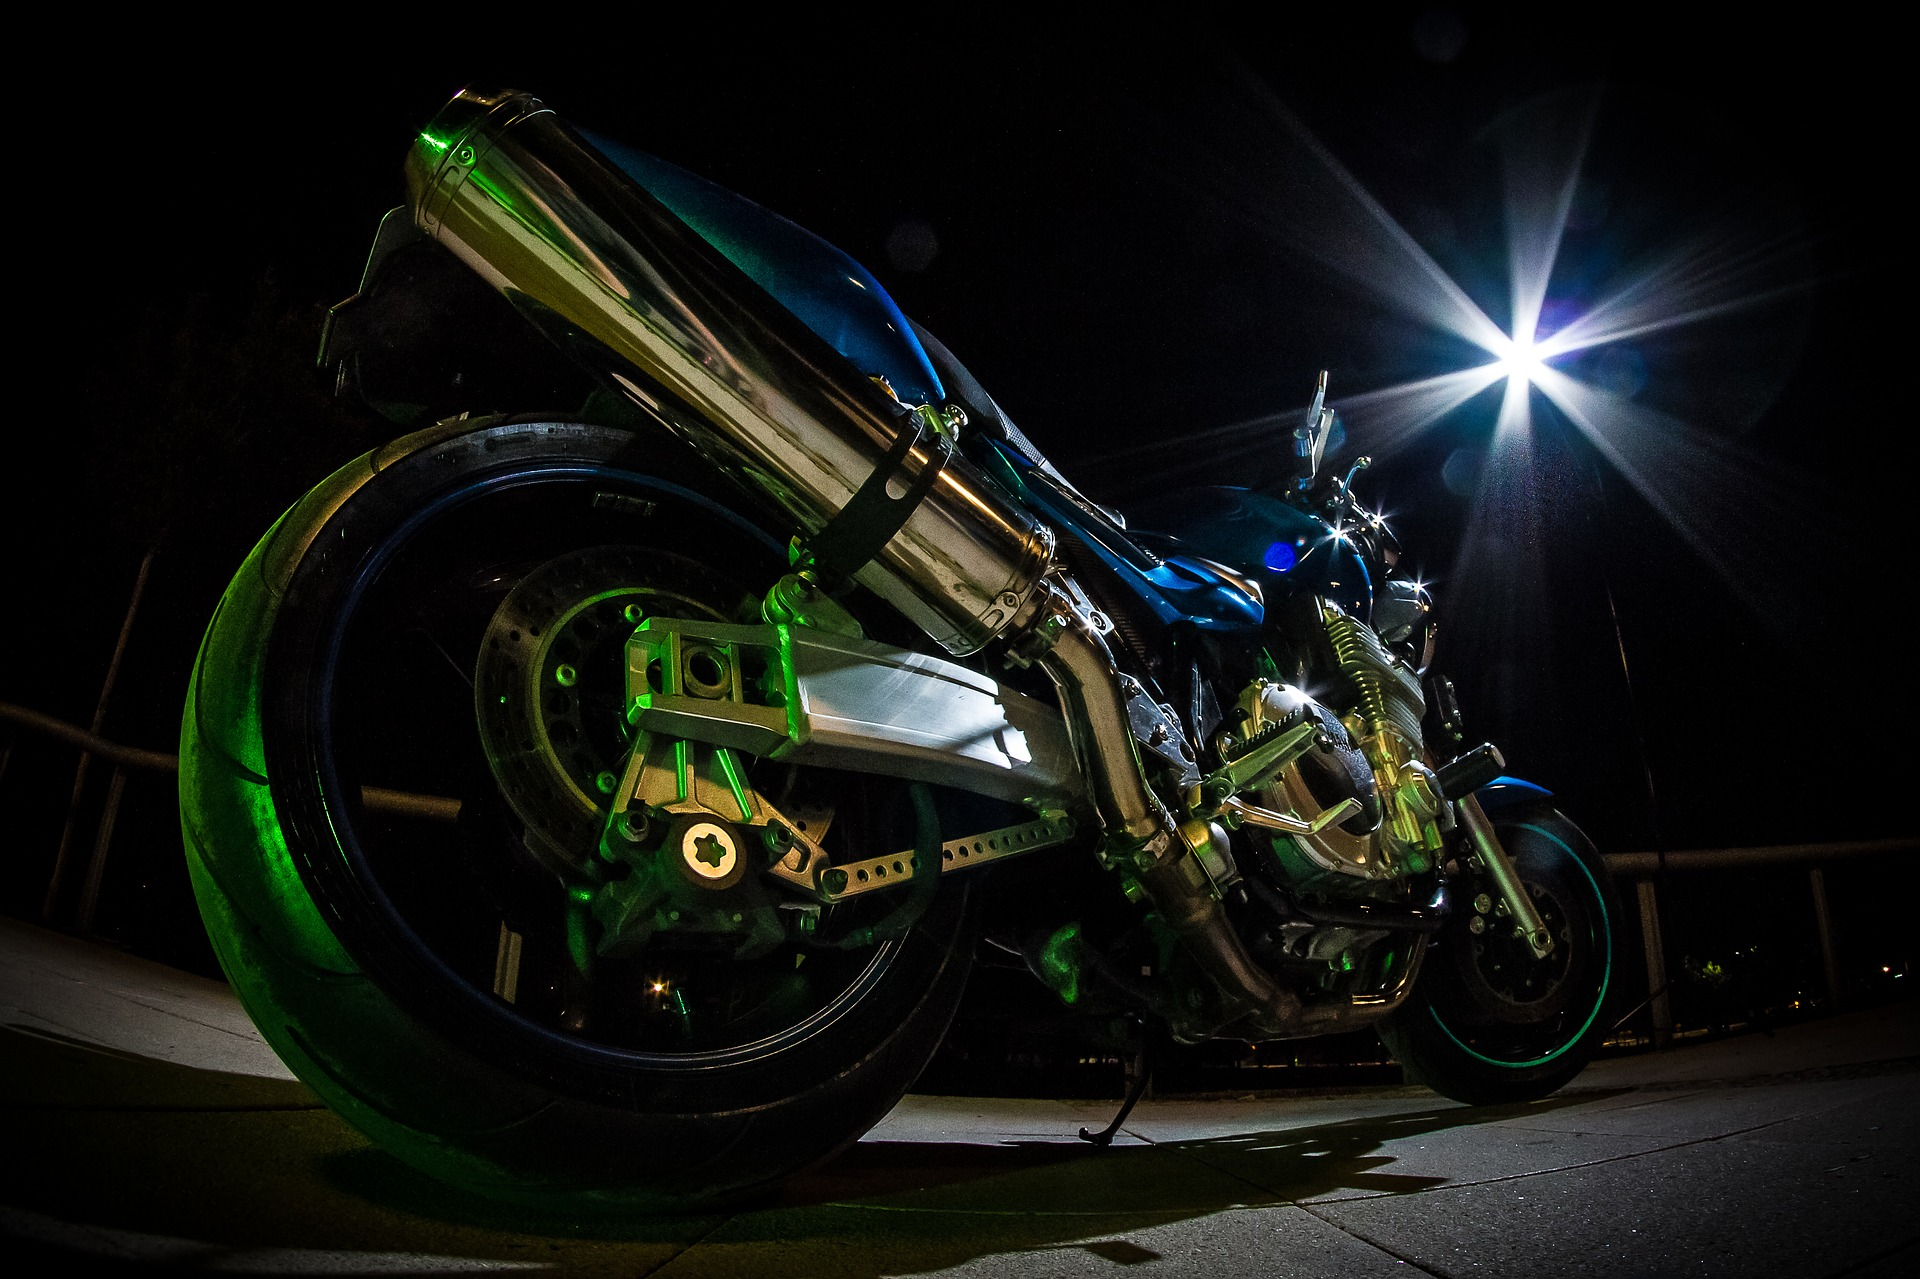 motorcycle-2543189_1920